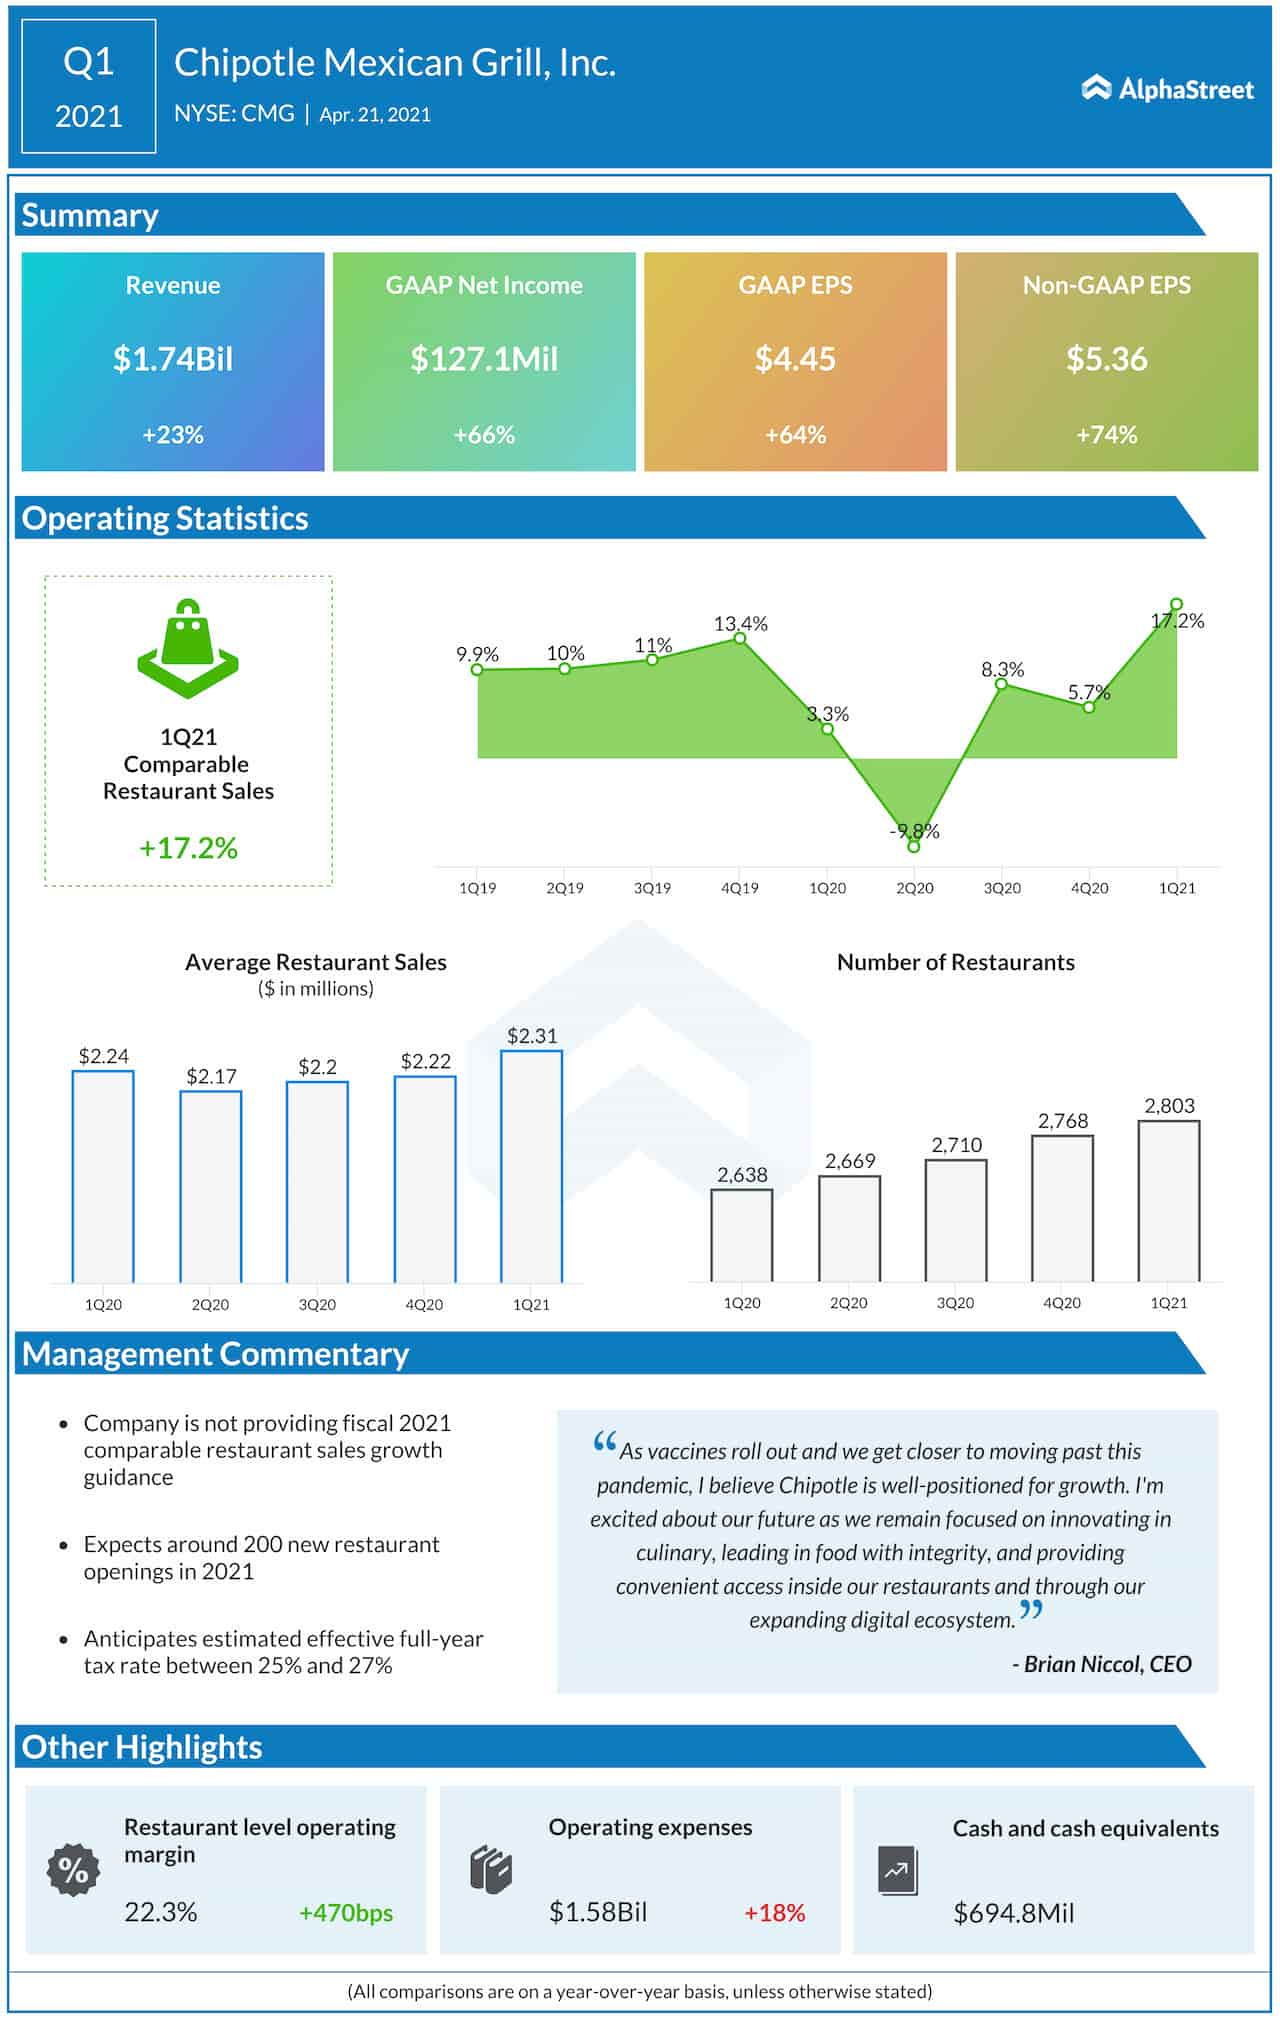 Chipotle Mexican Grill Q1 2021 earnings infographic